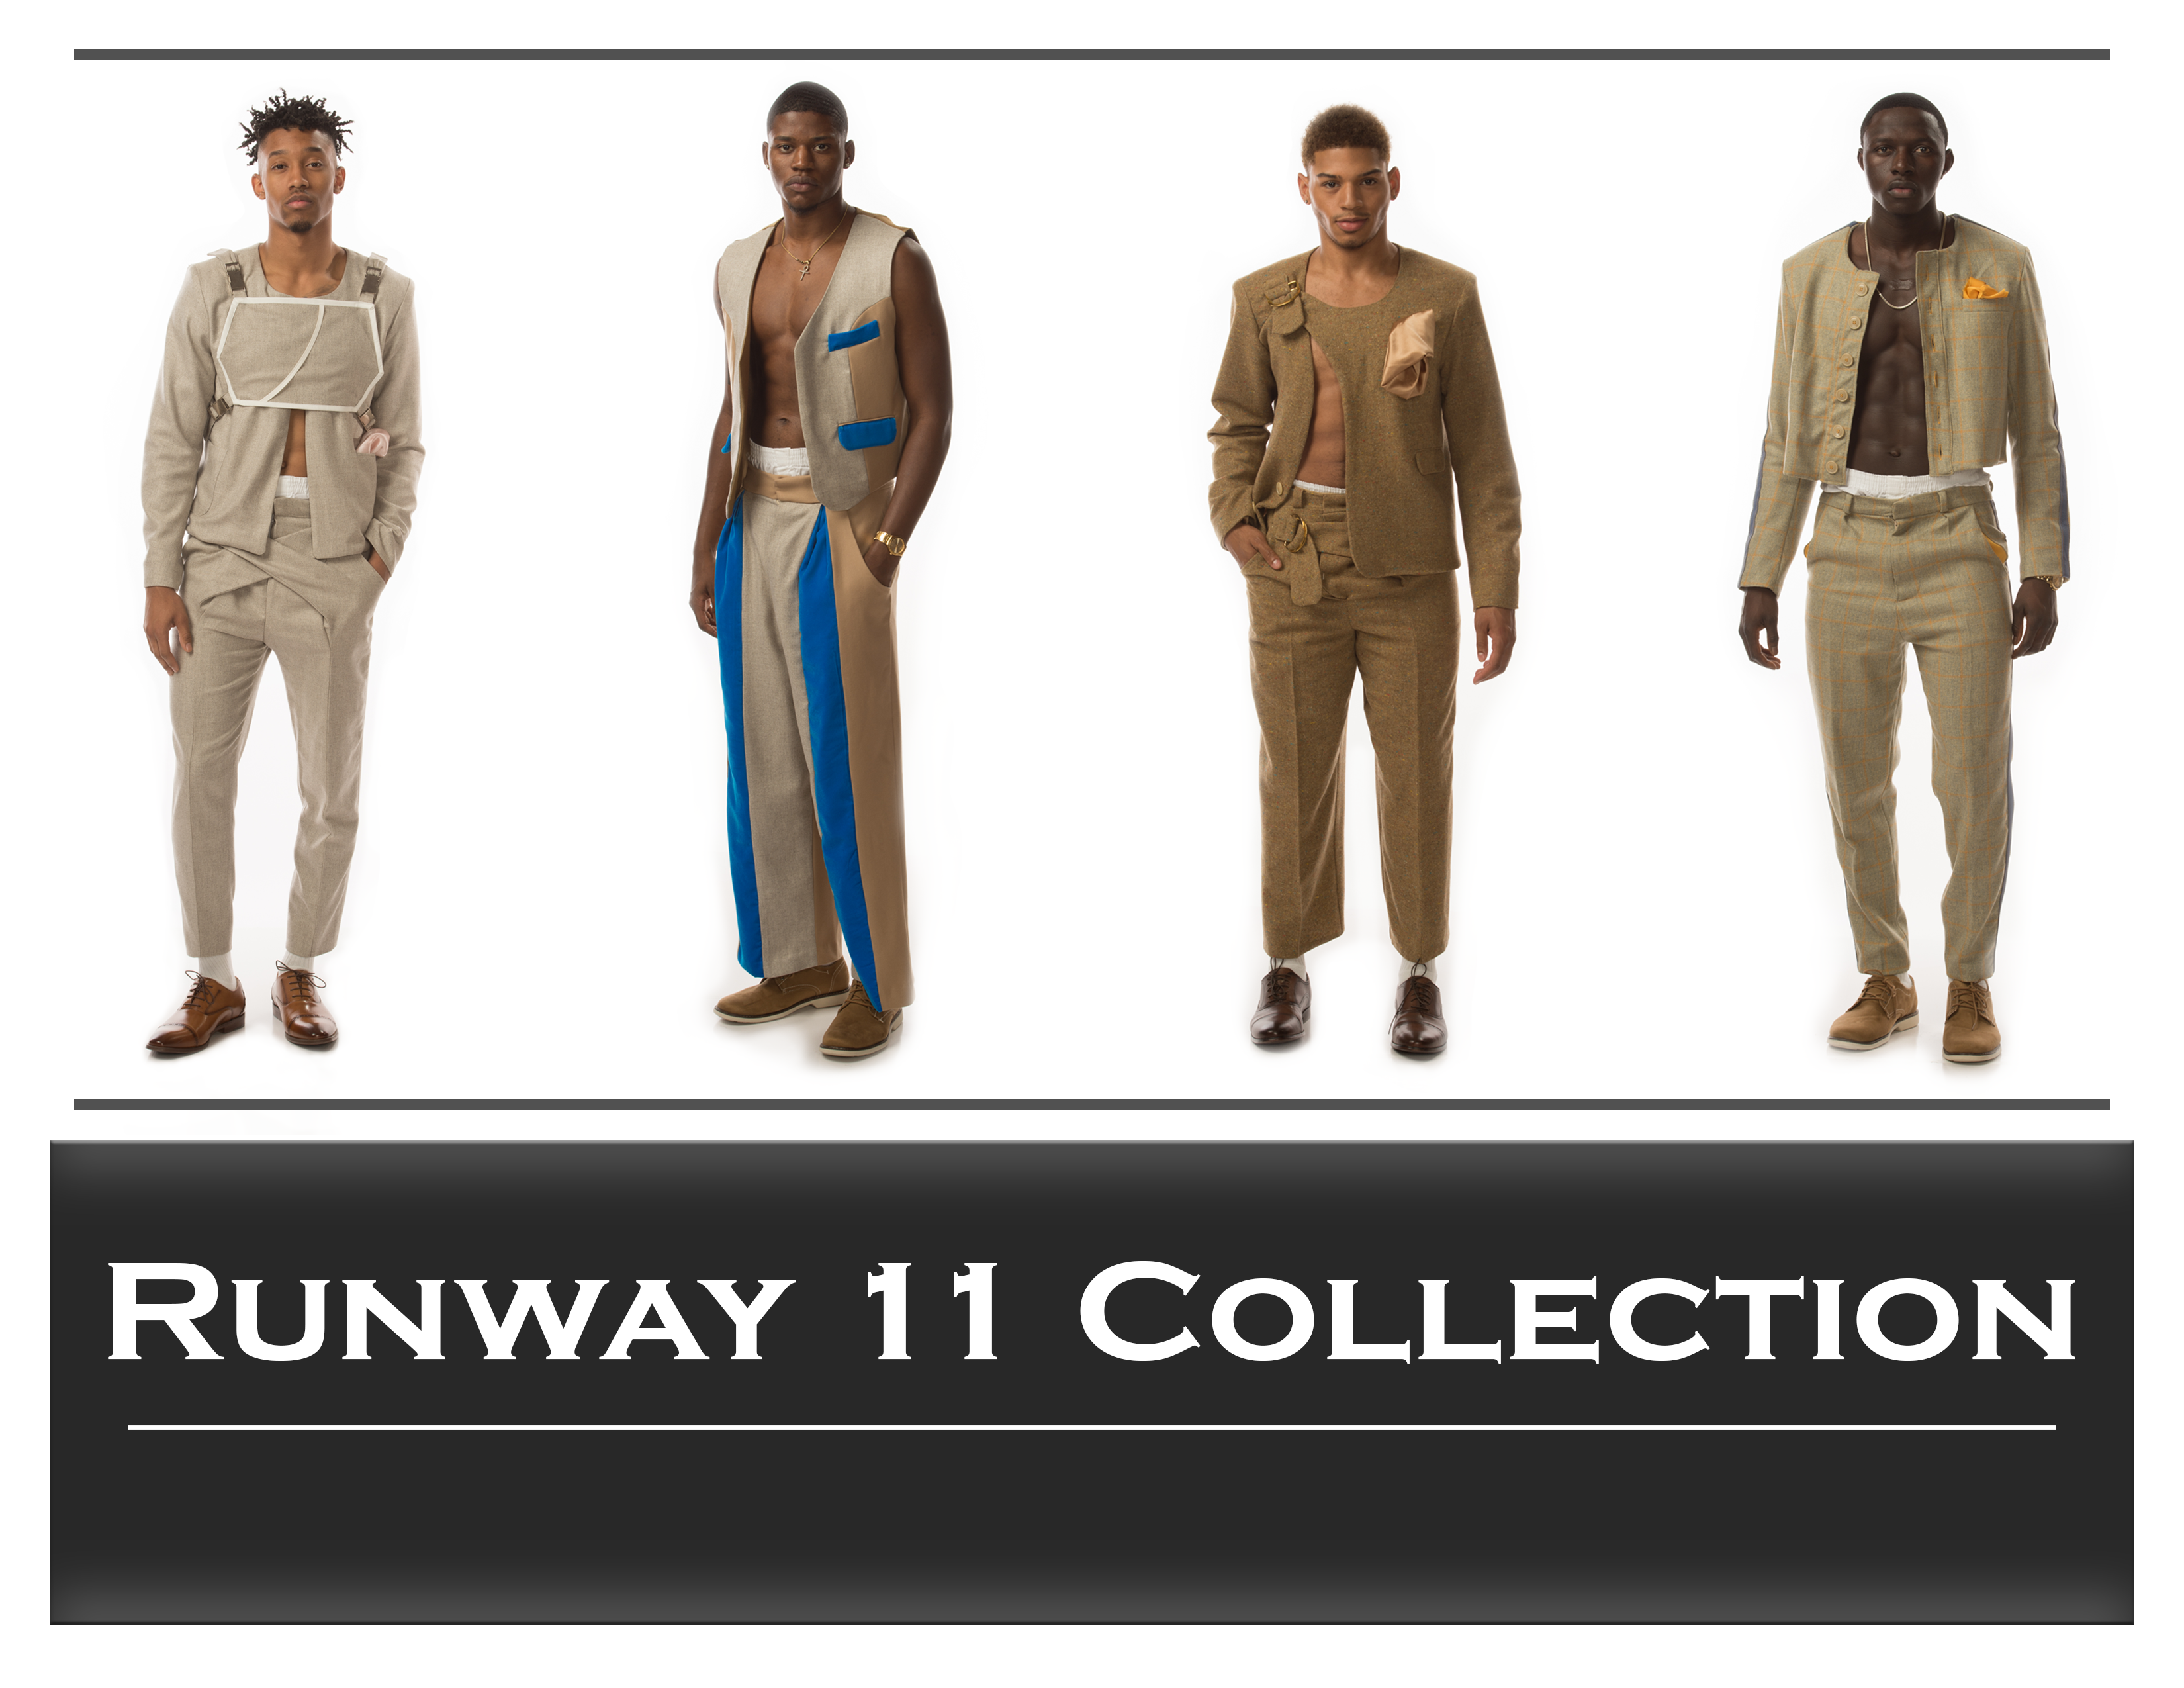 Slide 15 - Runway 11 Collection